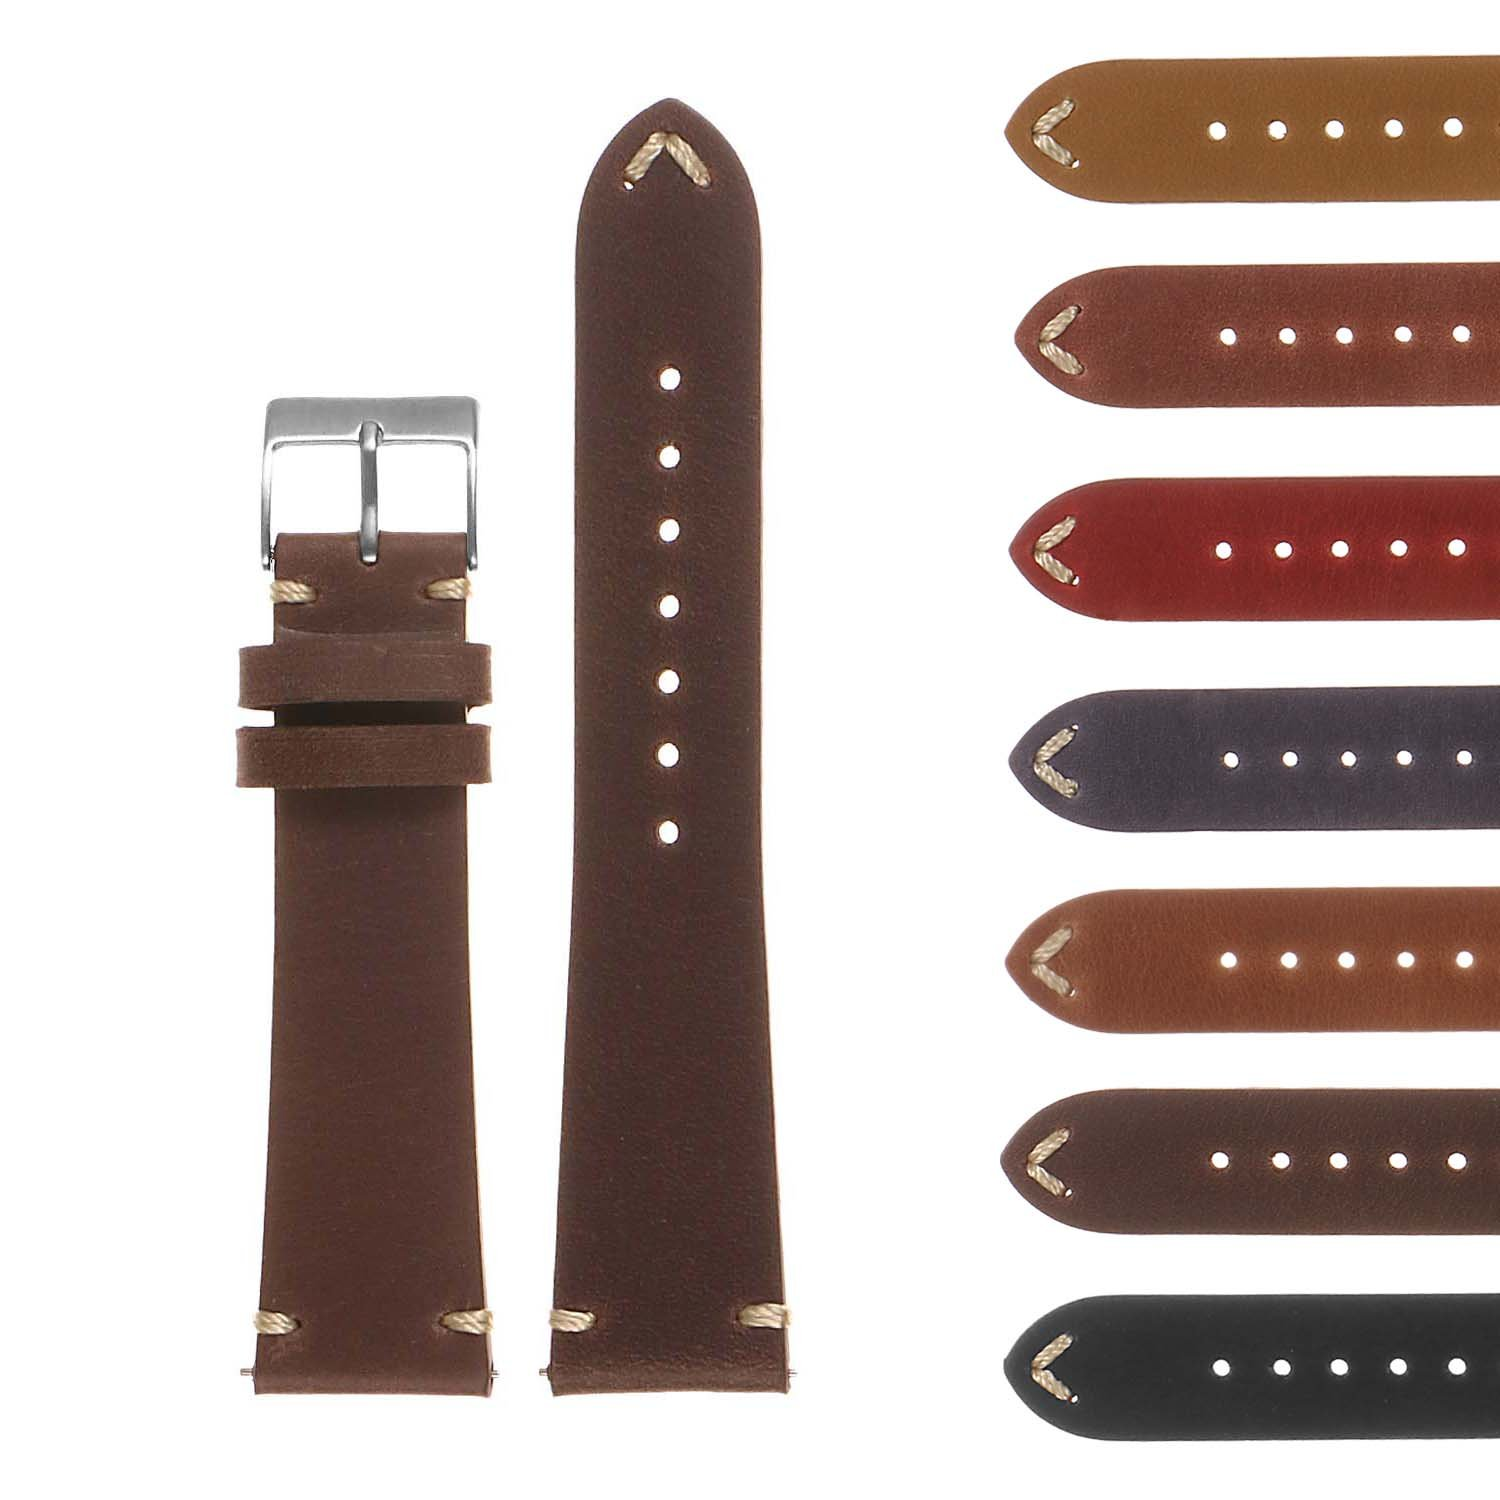 DASSARI Tribute II Quick Release Vintage Italian Leather Watch Band Strap 16mm 18mm 19mm 20mm 21mm 22mm 24mm 26mm